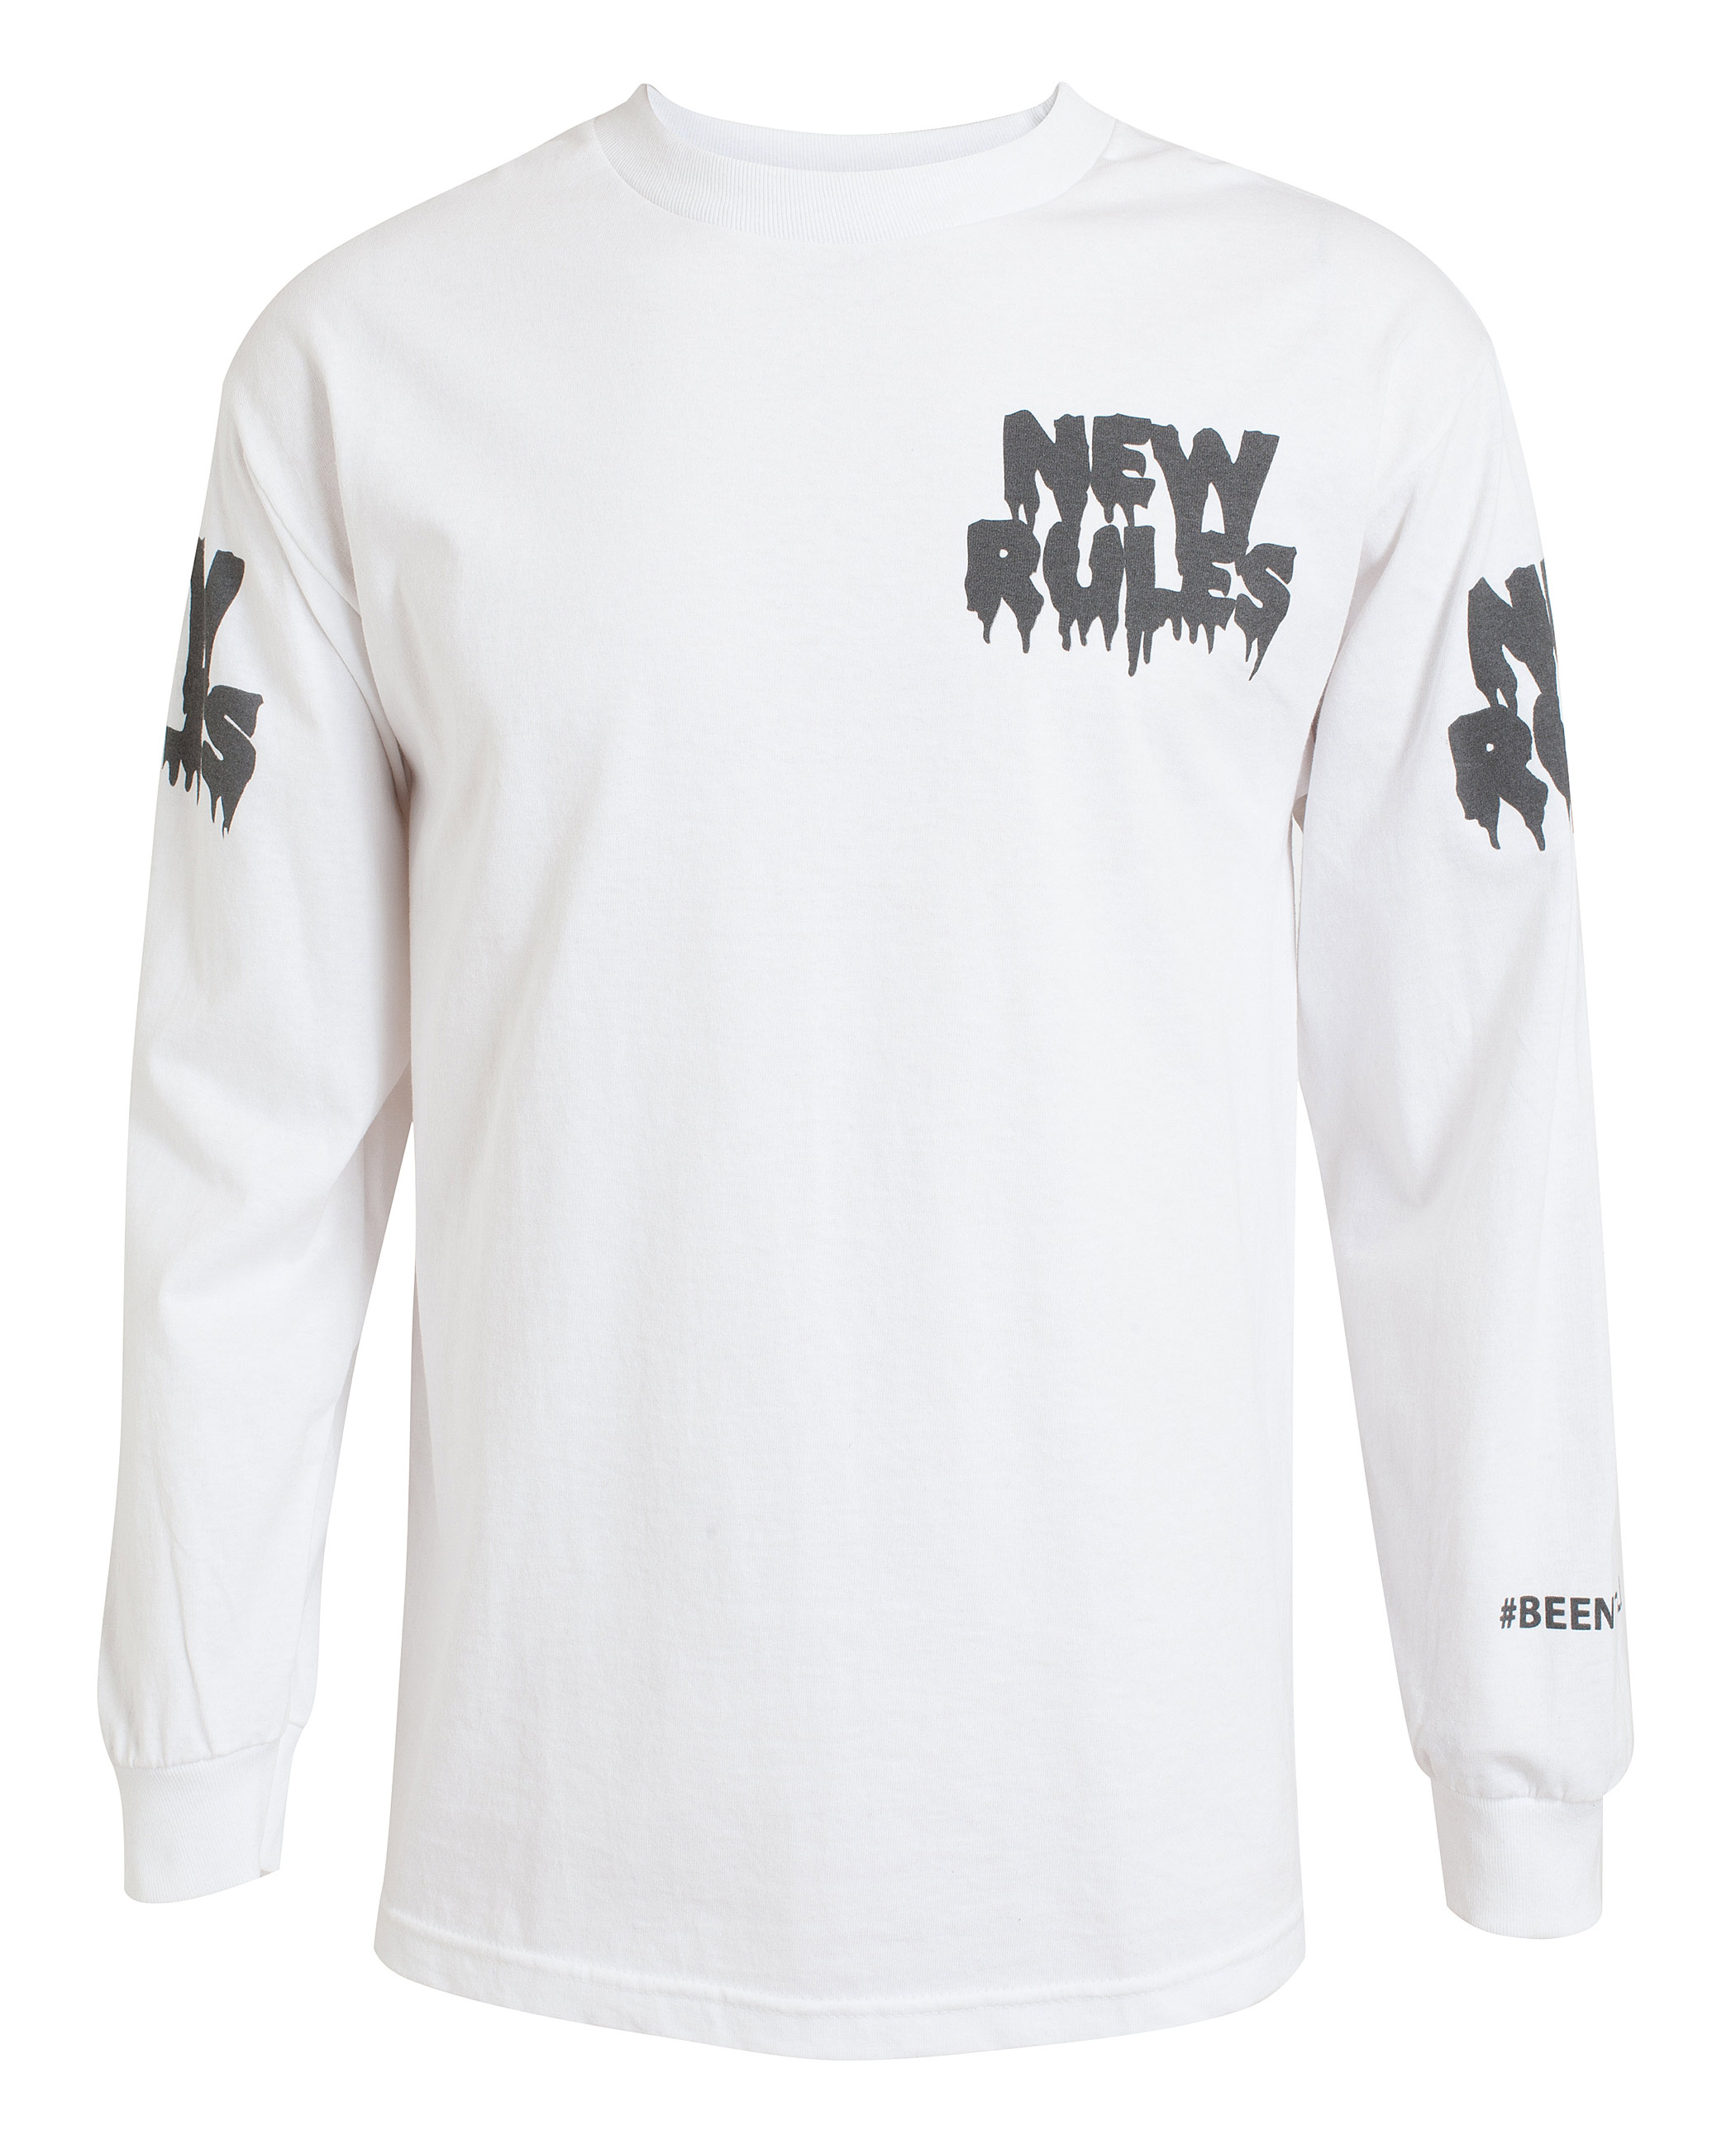 067565c425c Been trill New Rules Cotton Long Sleeve T-Shirt in White .